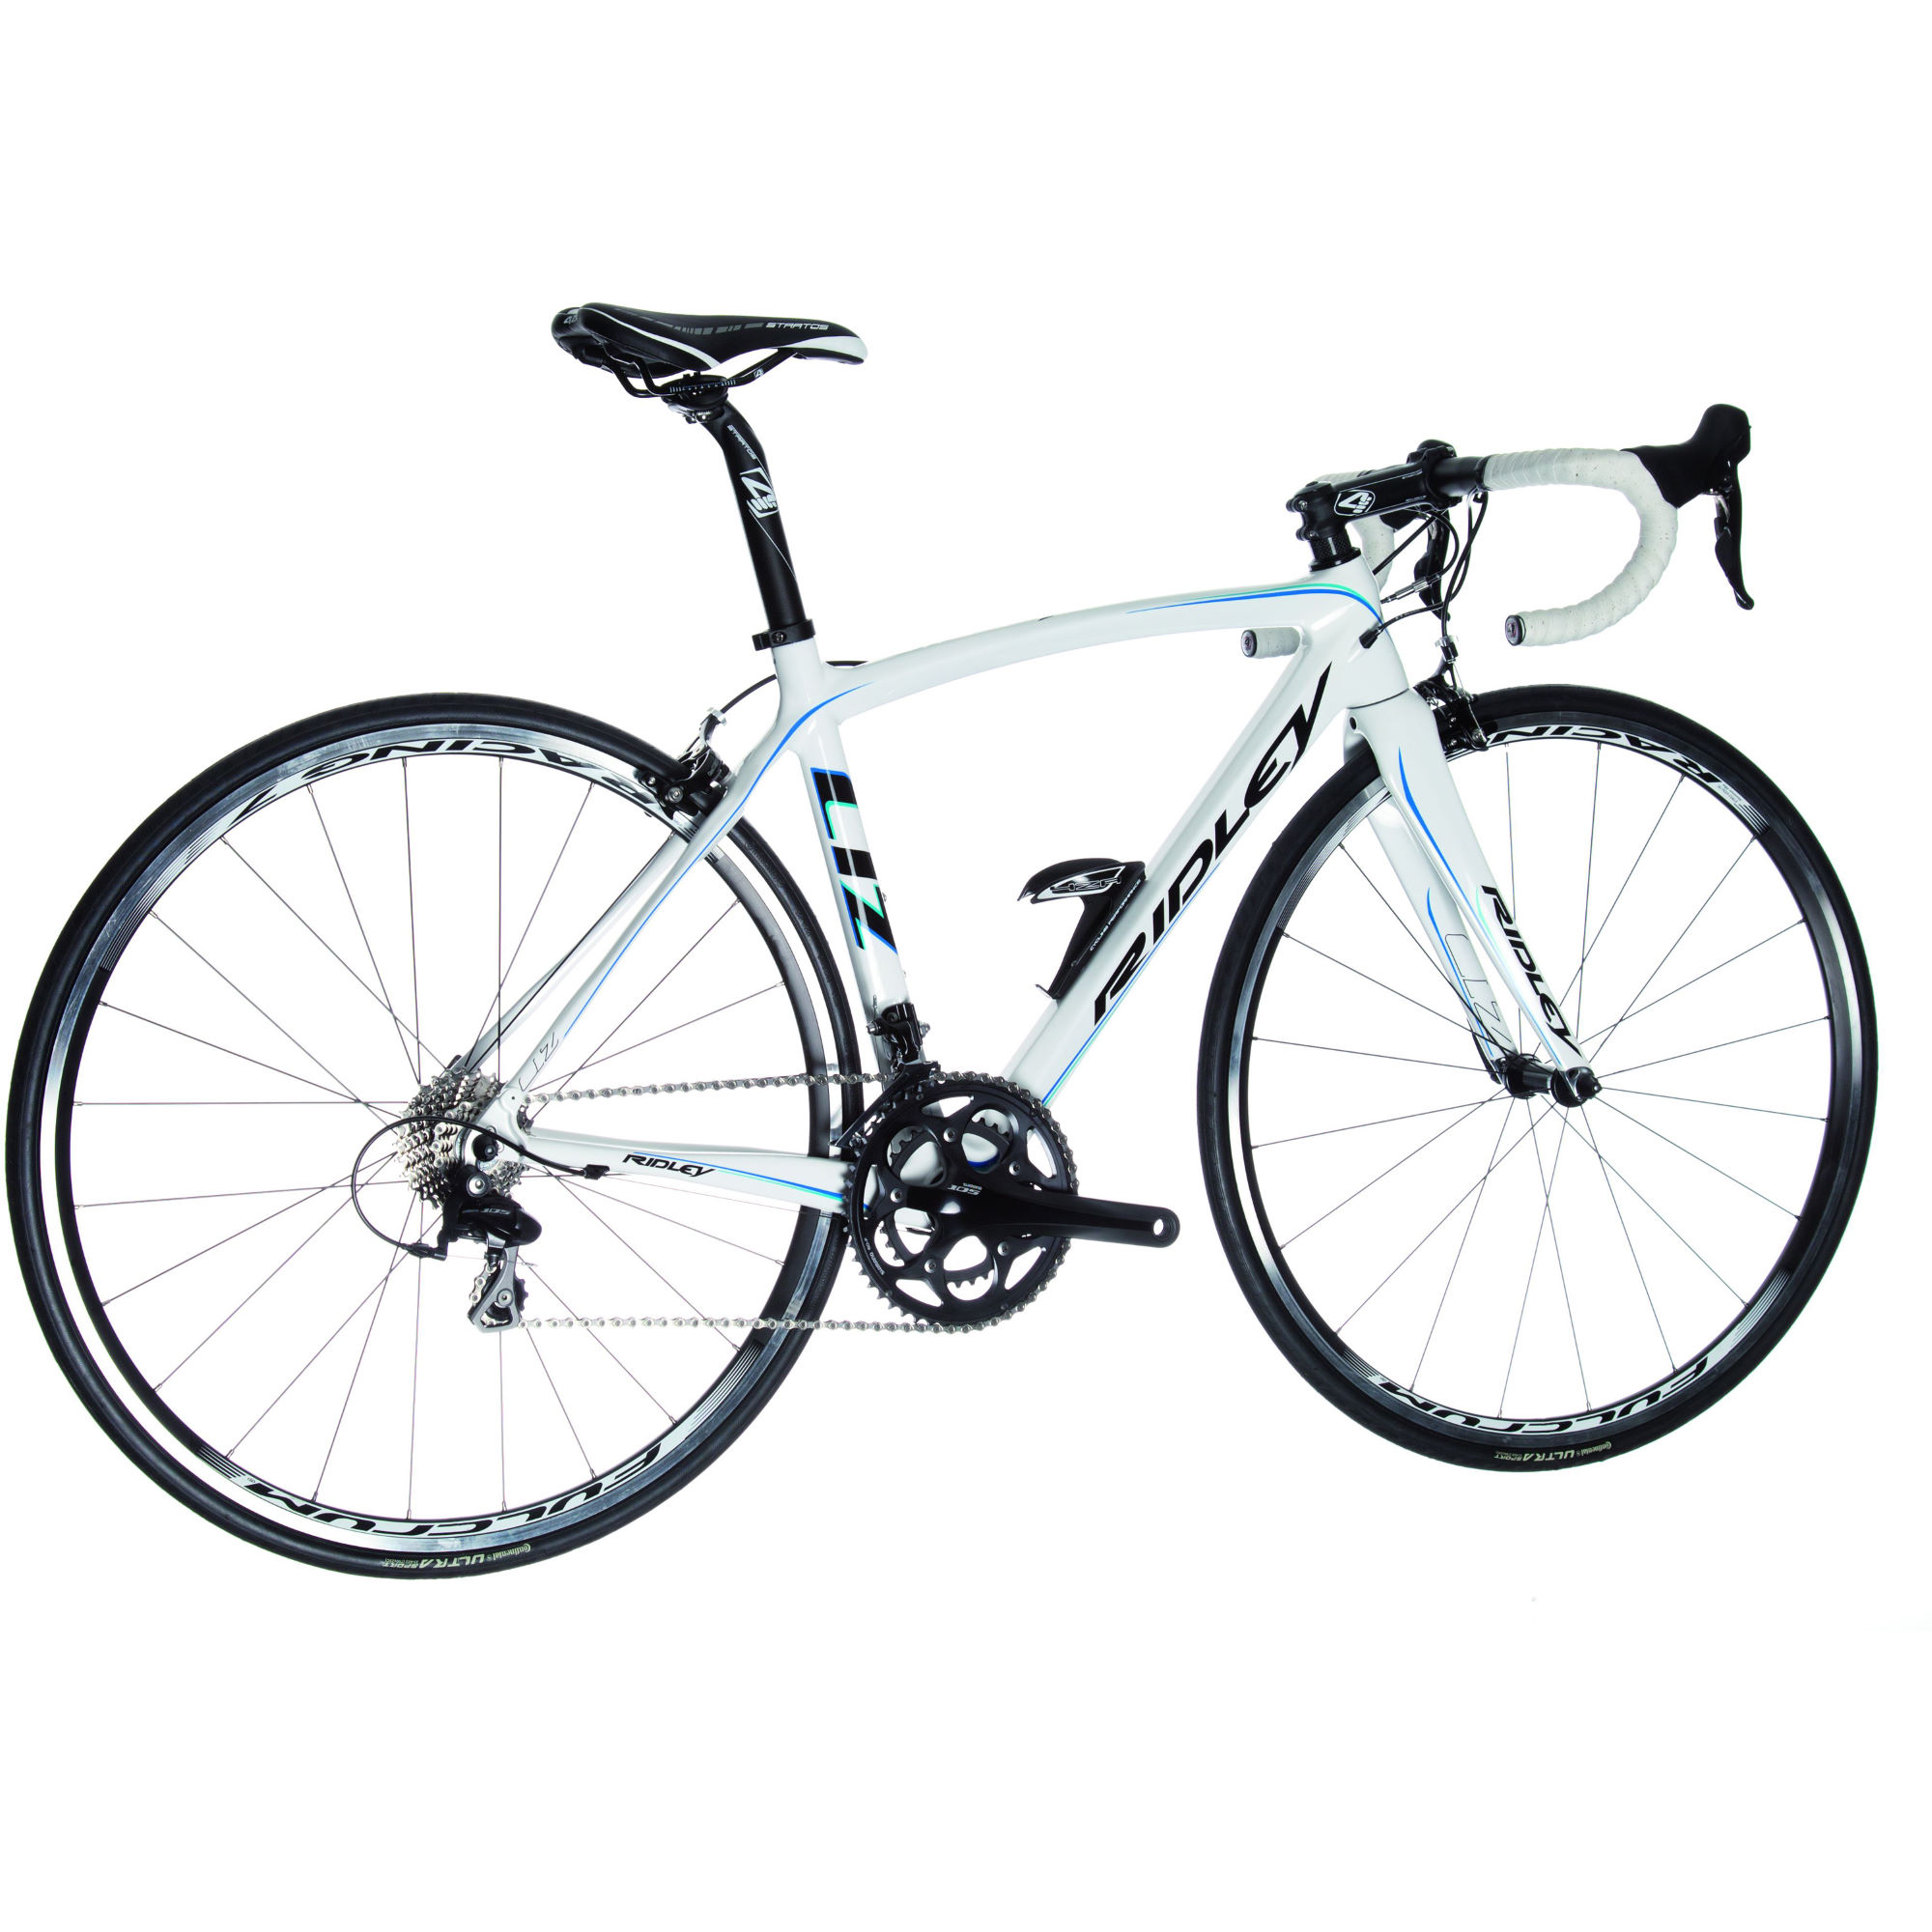 Wiggle Ridley Women S Liz 1309a 105 2013 White Blue Medium